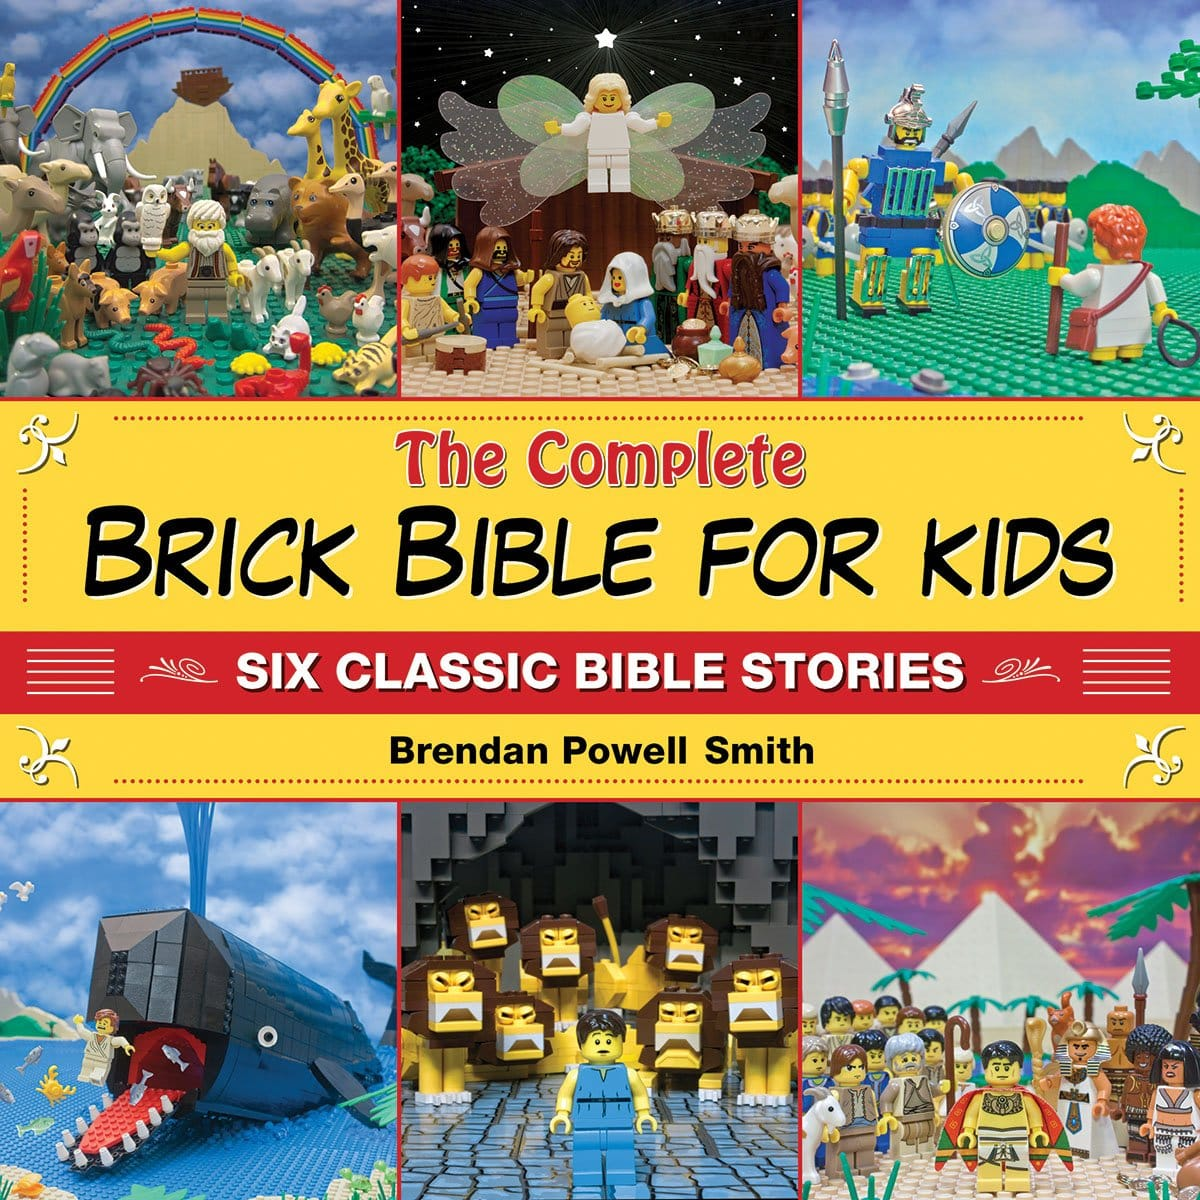 The Complete Brick Bible for Kids (Lego Bible Stories) - $8